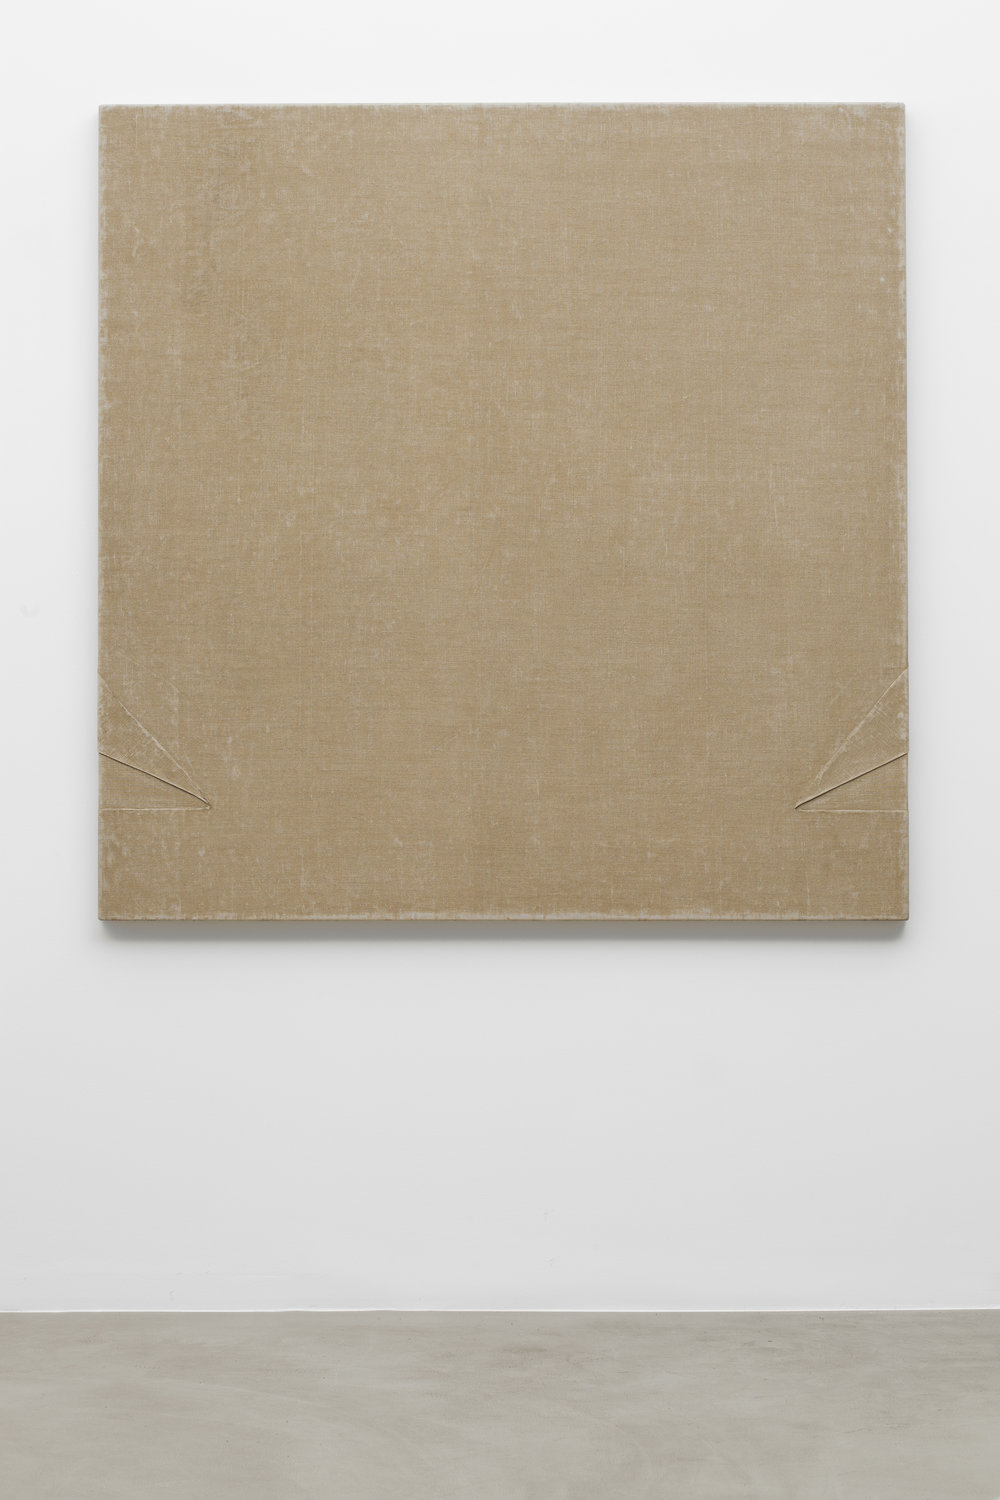 Friedrich Teepe  B 74 , 1973 canvas, binding agent, 150 x 150 cm